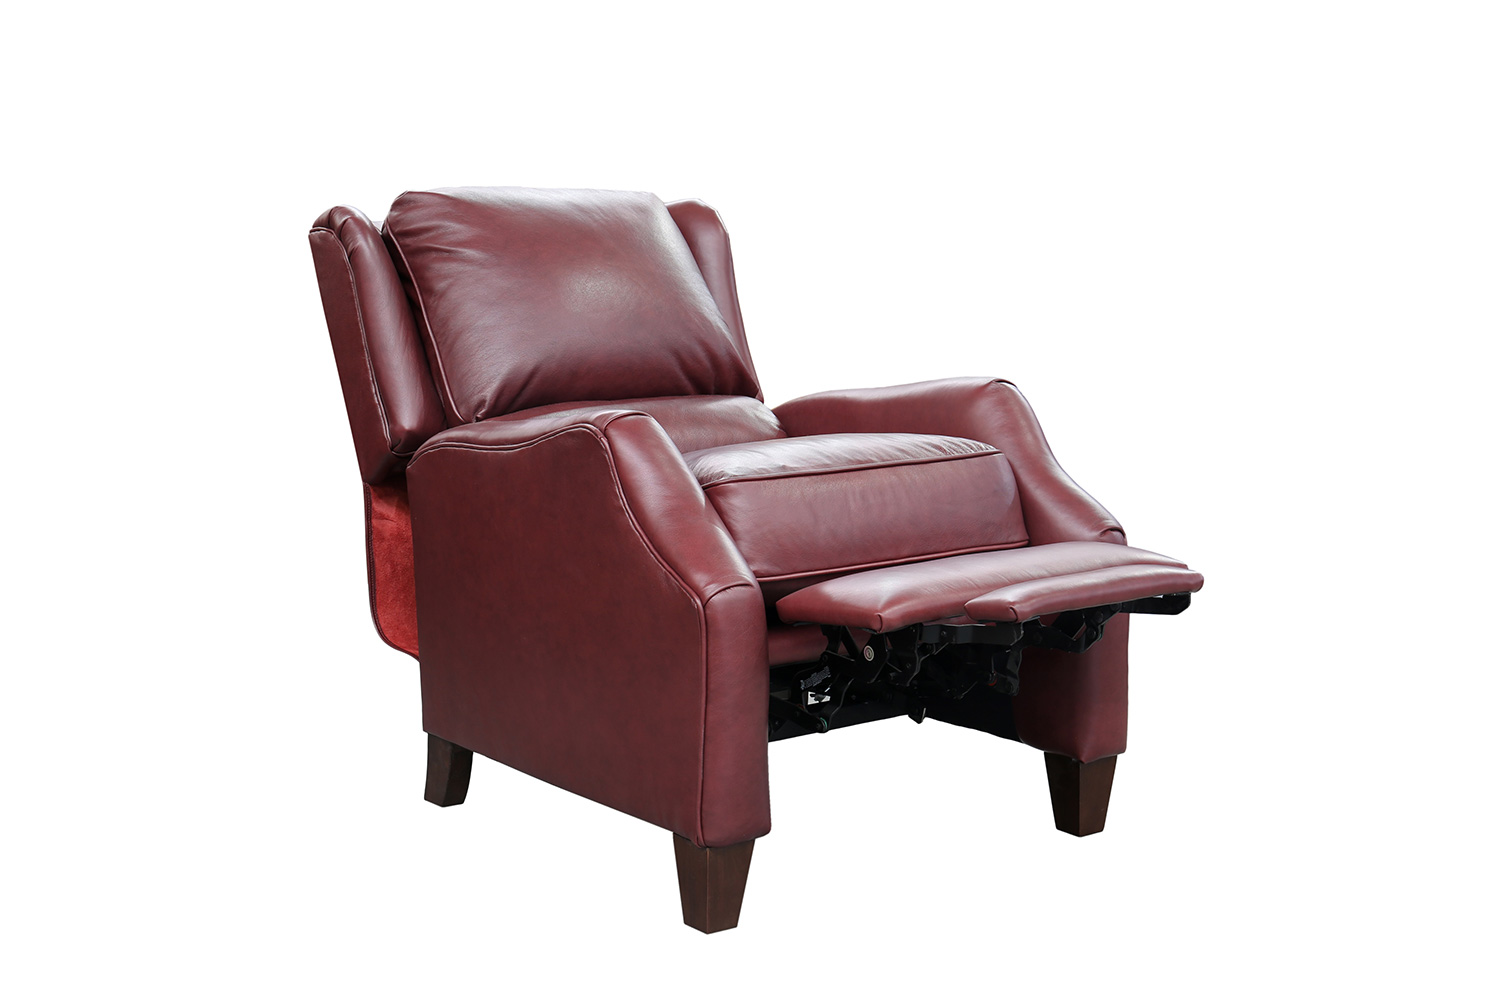 Barcalounger Berkeley Recliner Chair - Shoreham Wine/All Leather